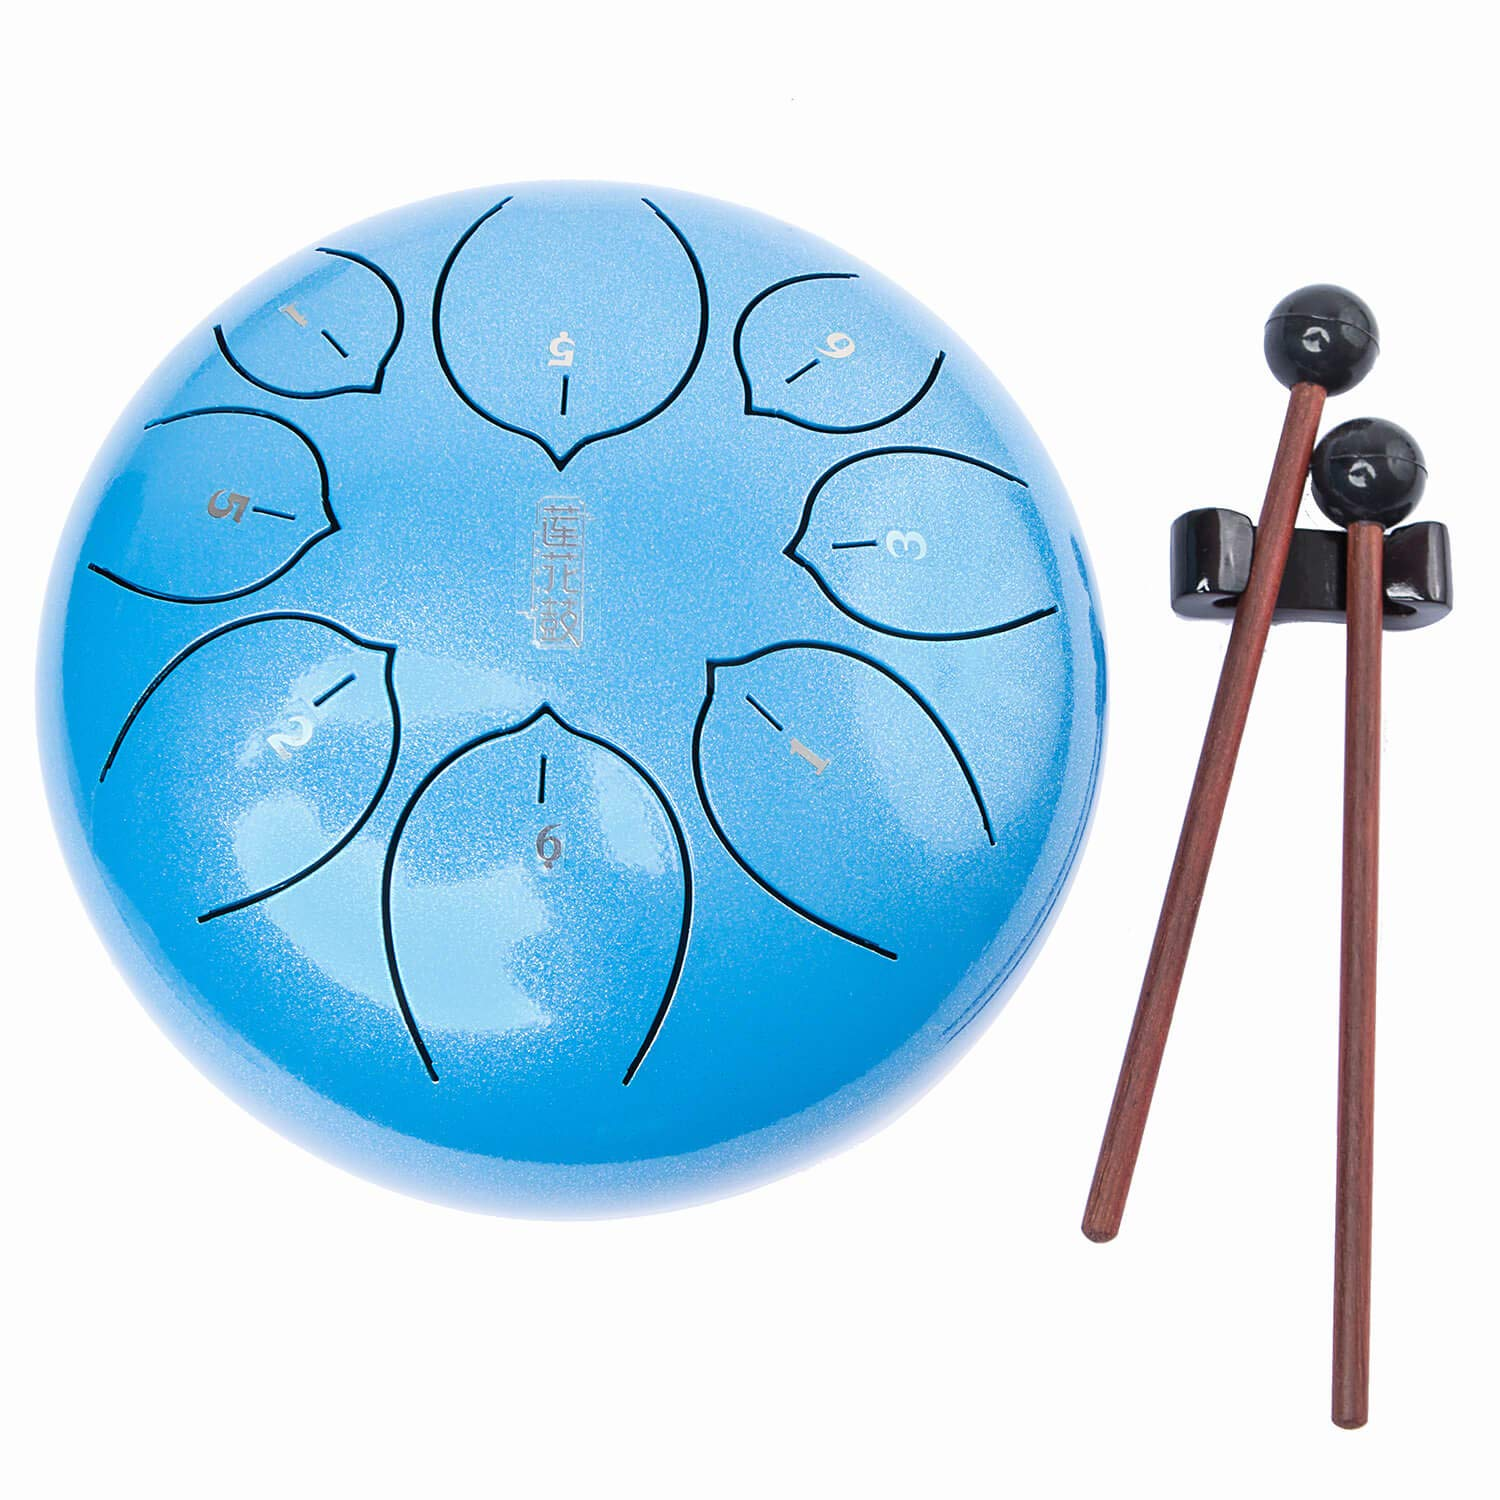 Lronbird Steel Tongue Drum - 8 Notes 10 inches - Percussion Instrument - Handpan Drum with Padded Travel Bag, Book, Mallets, Finger Picks for Meditation, Yoga, Zen and Gift (Blue)